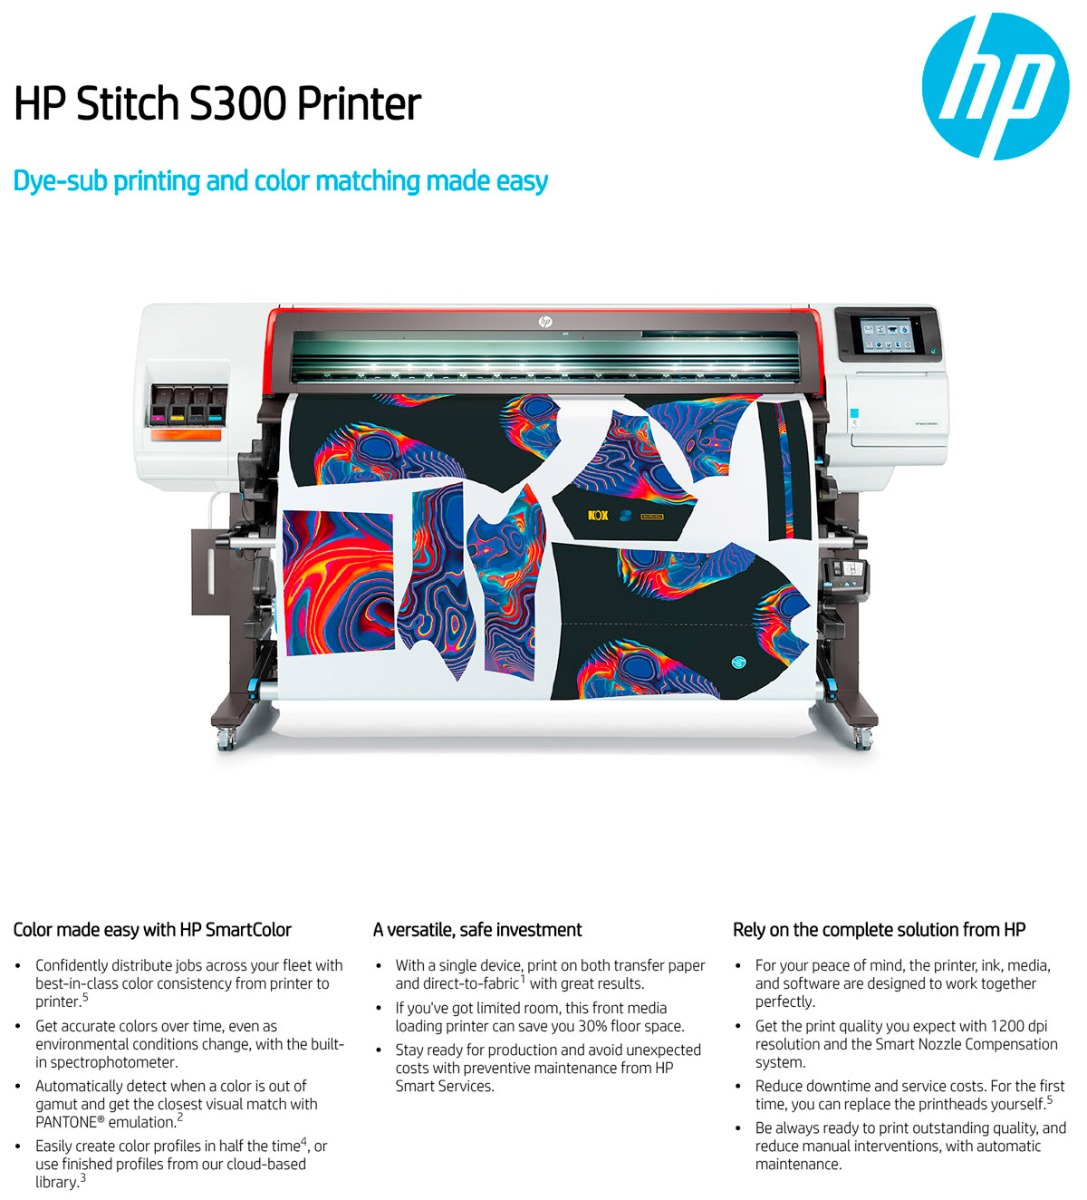 hp stitch s300 printer features including color consistency across printers easy profiling user replaceable printheads auto maintenance and print direct to fabric